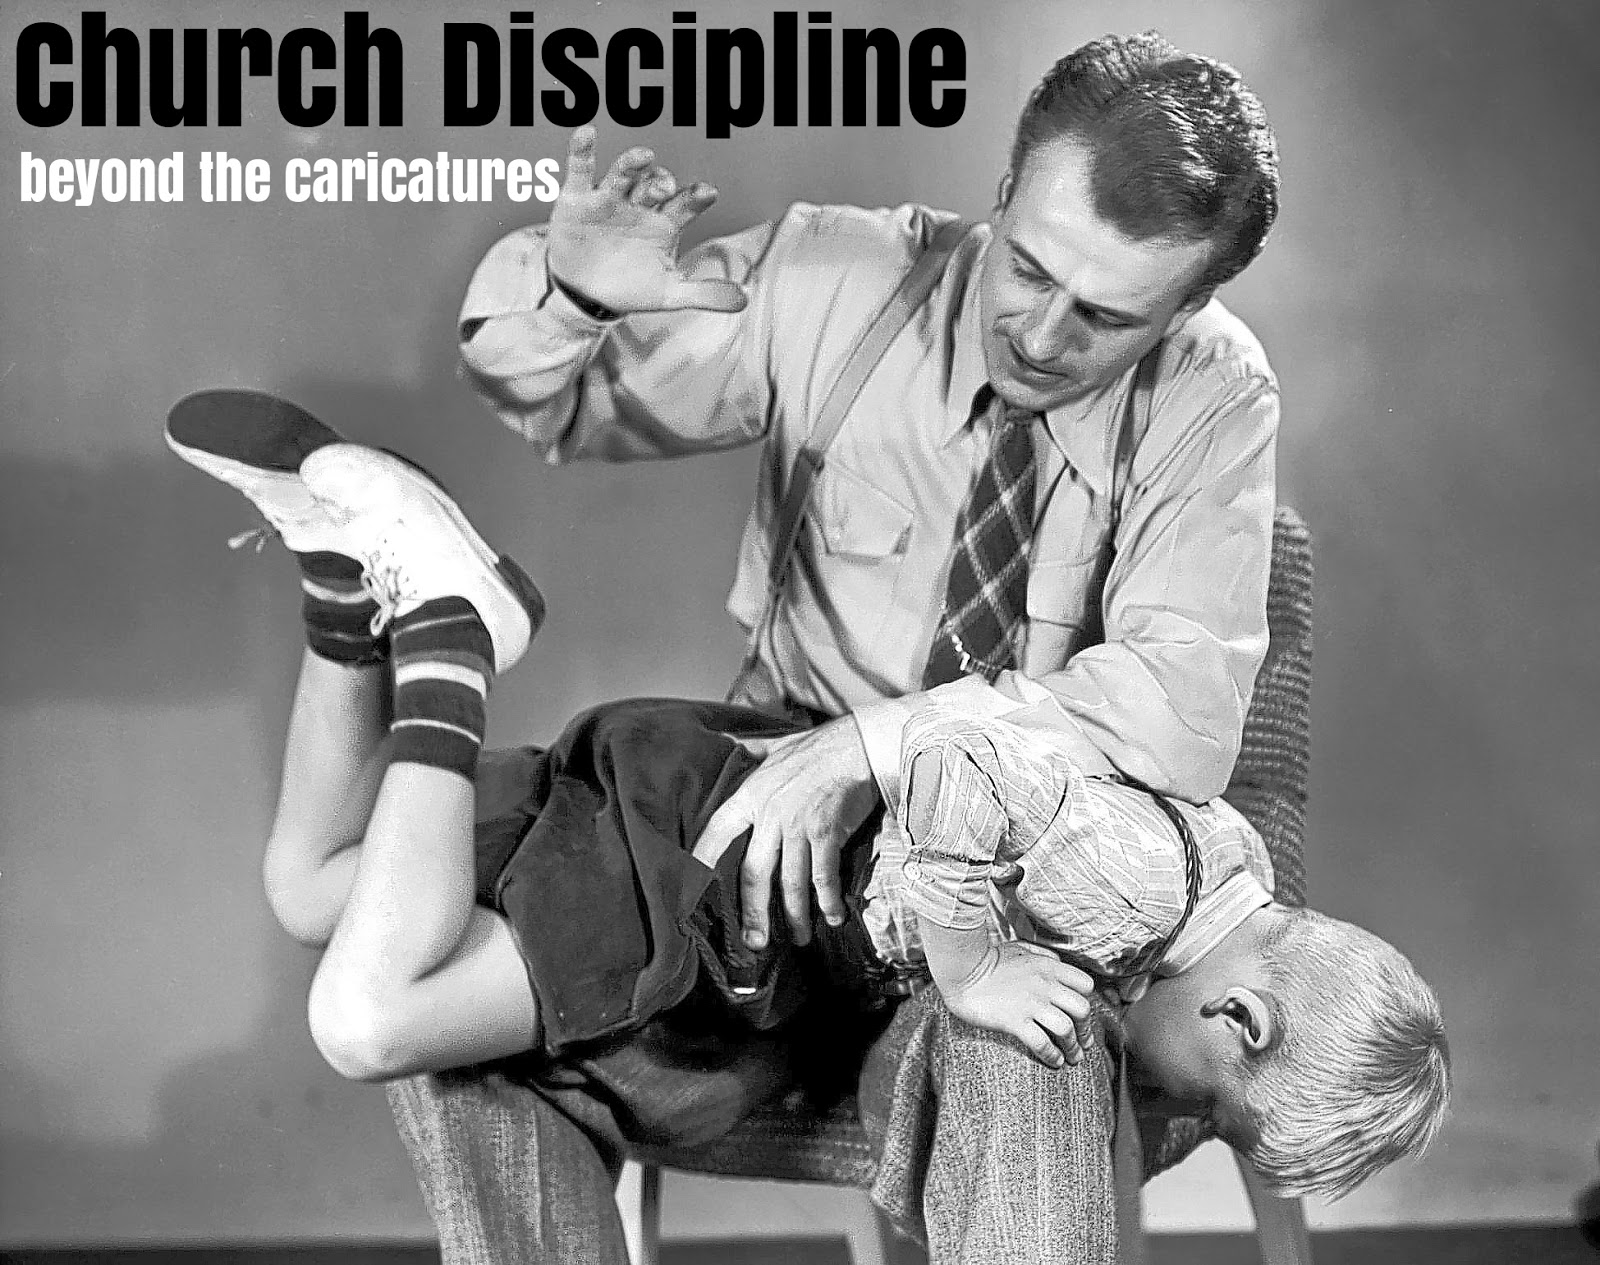 Fearful of Church's discipline and culture